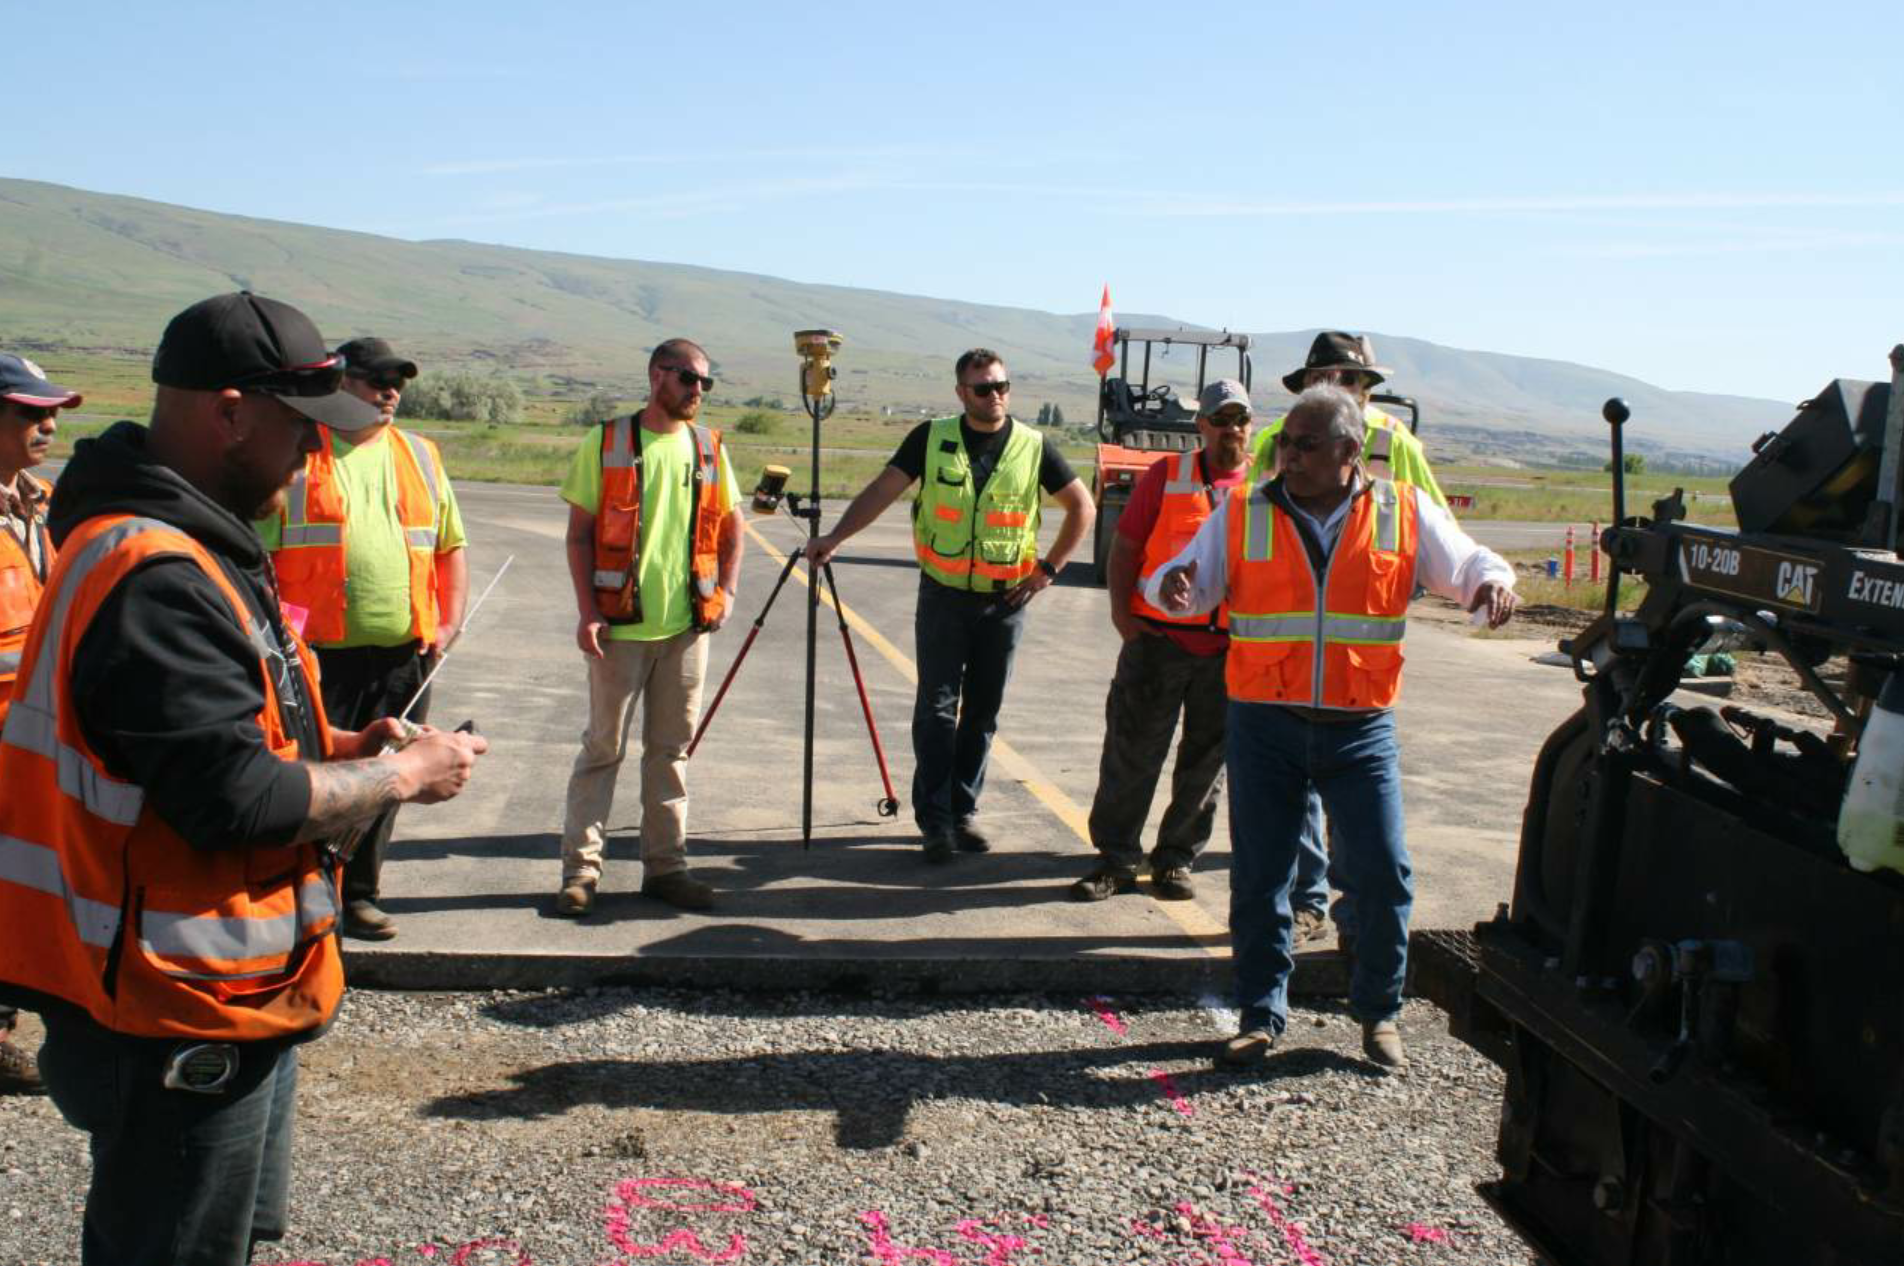 Not your ordinary toolbox talk! The PPI Group is the regional dealer that helped get a package of Topcon's millimeter-grade technology together in short order and helped the team members understand how to use it for success on the project.